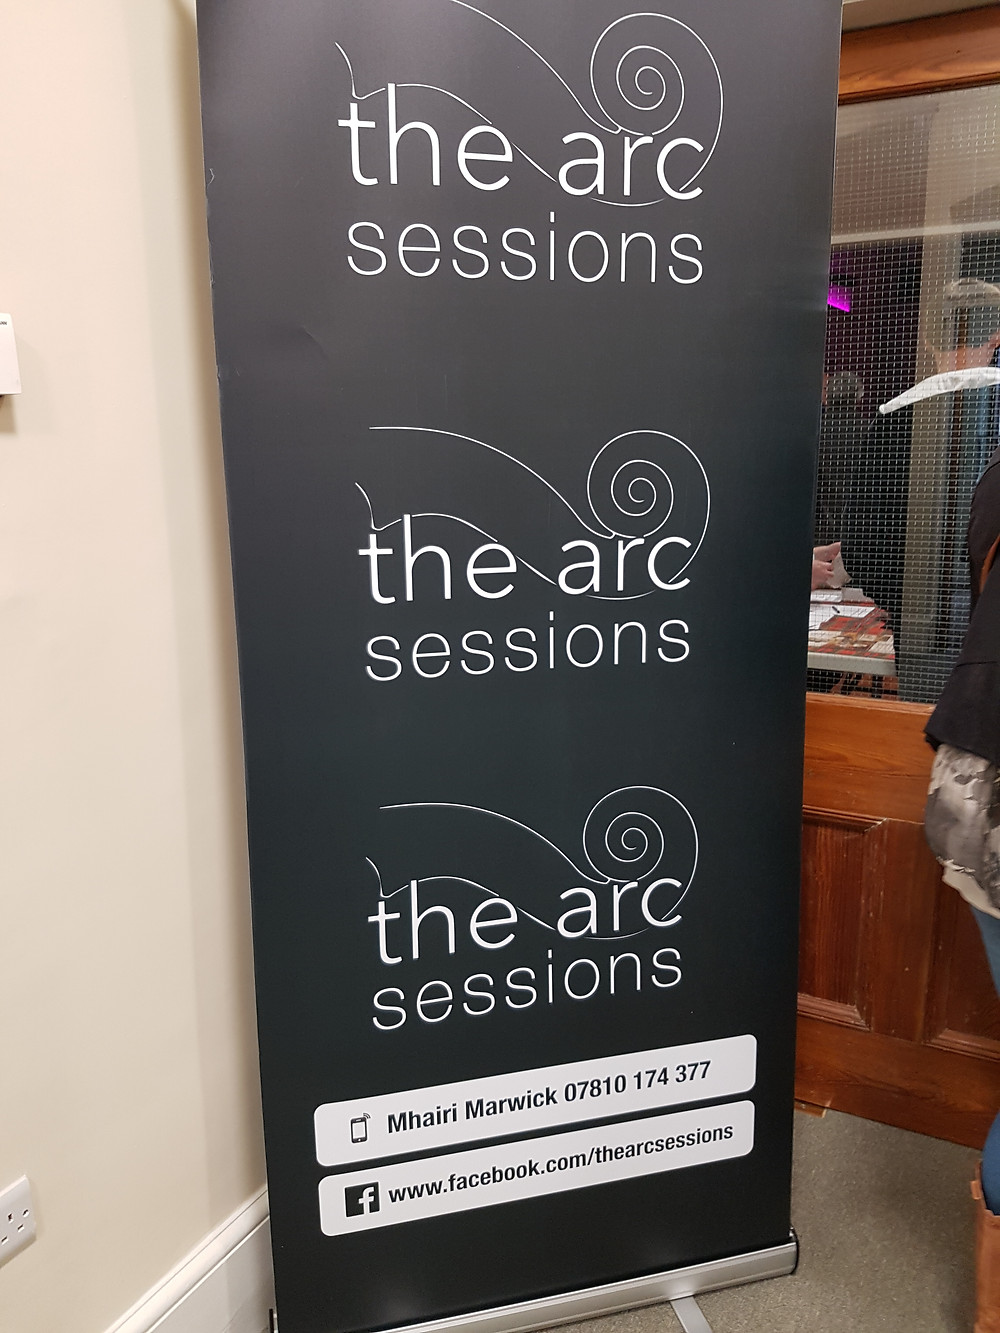 The Arc Sessions